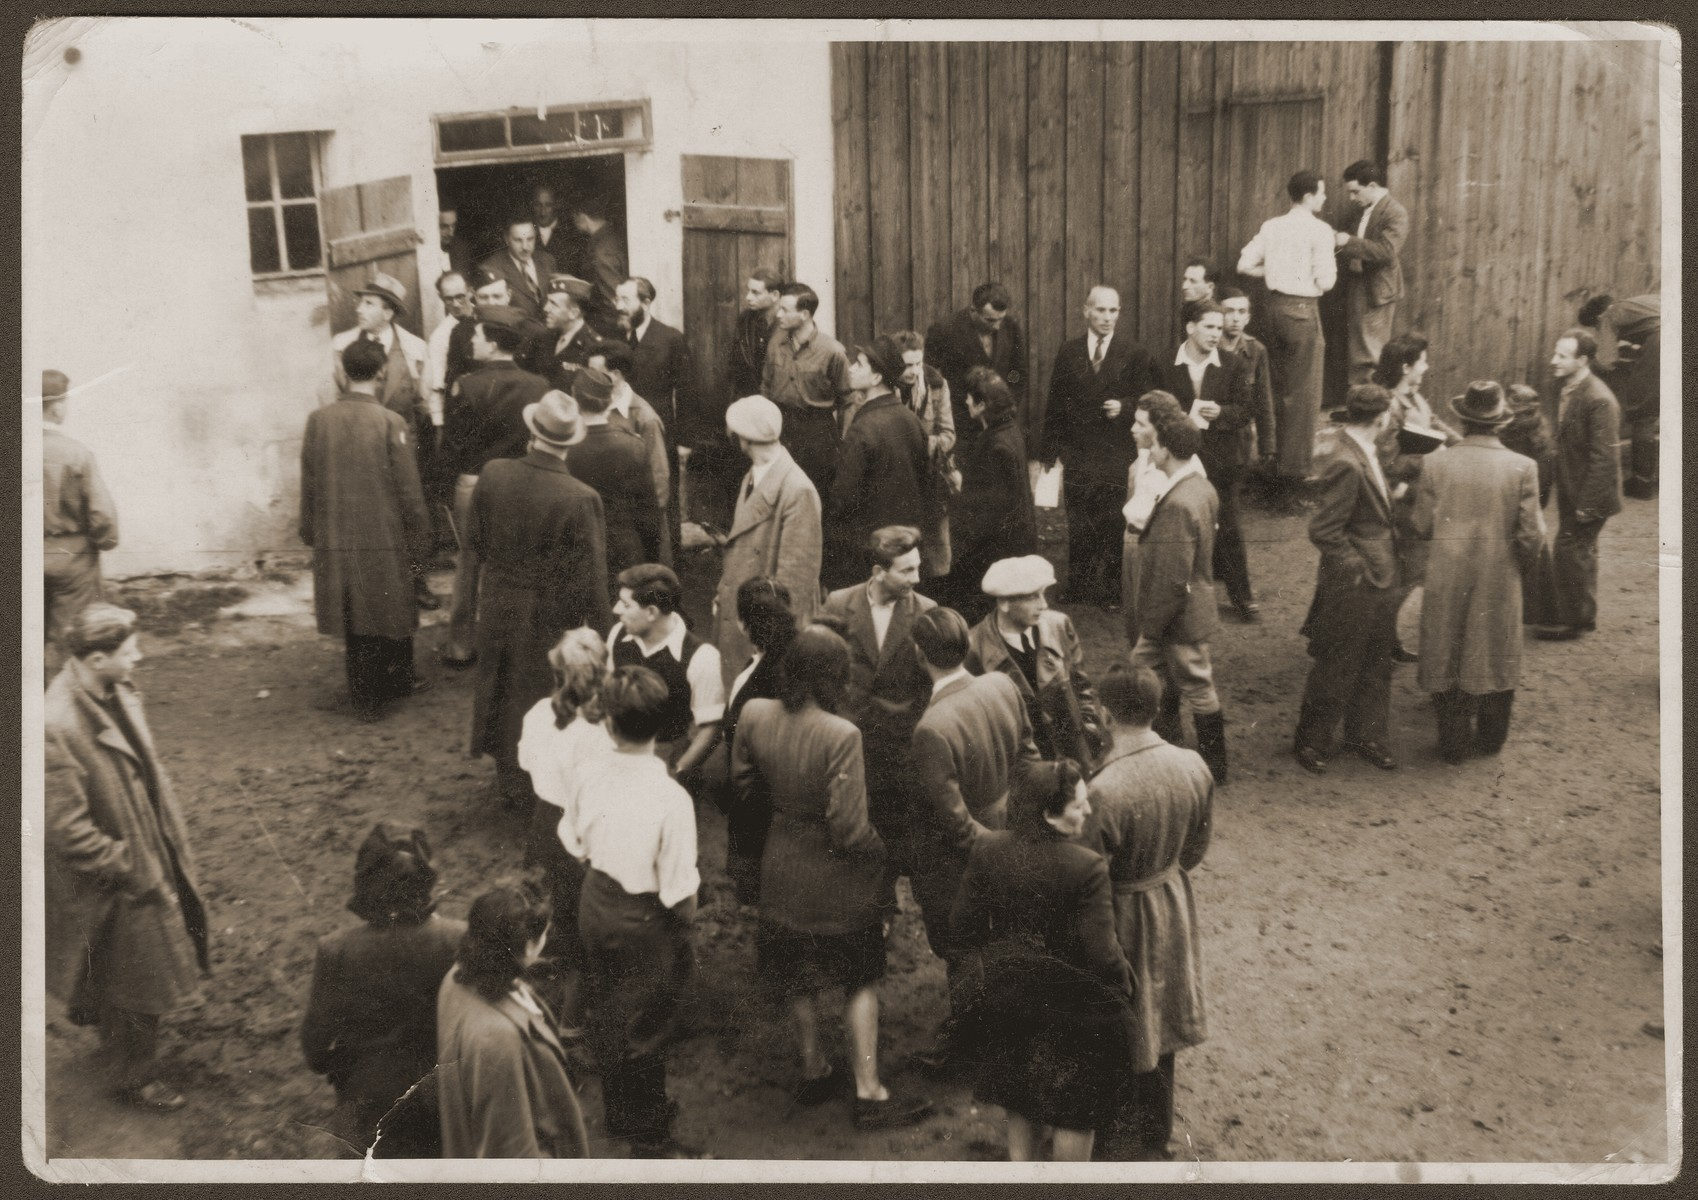 Official opening of the Zettlitz hachshara near Weiden, Germany.  US Army chaplain Saul Shapiro officiates at the opening.   Welek Luksenburg is pictured at the far left.  Hadasa Cudzynowski and Hinda Chilewicz are pictured in the foreground at the left with their backs to the camera.